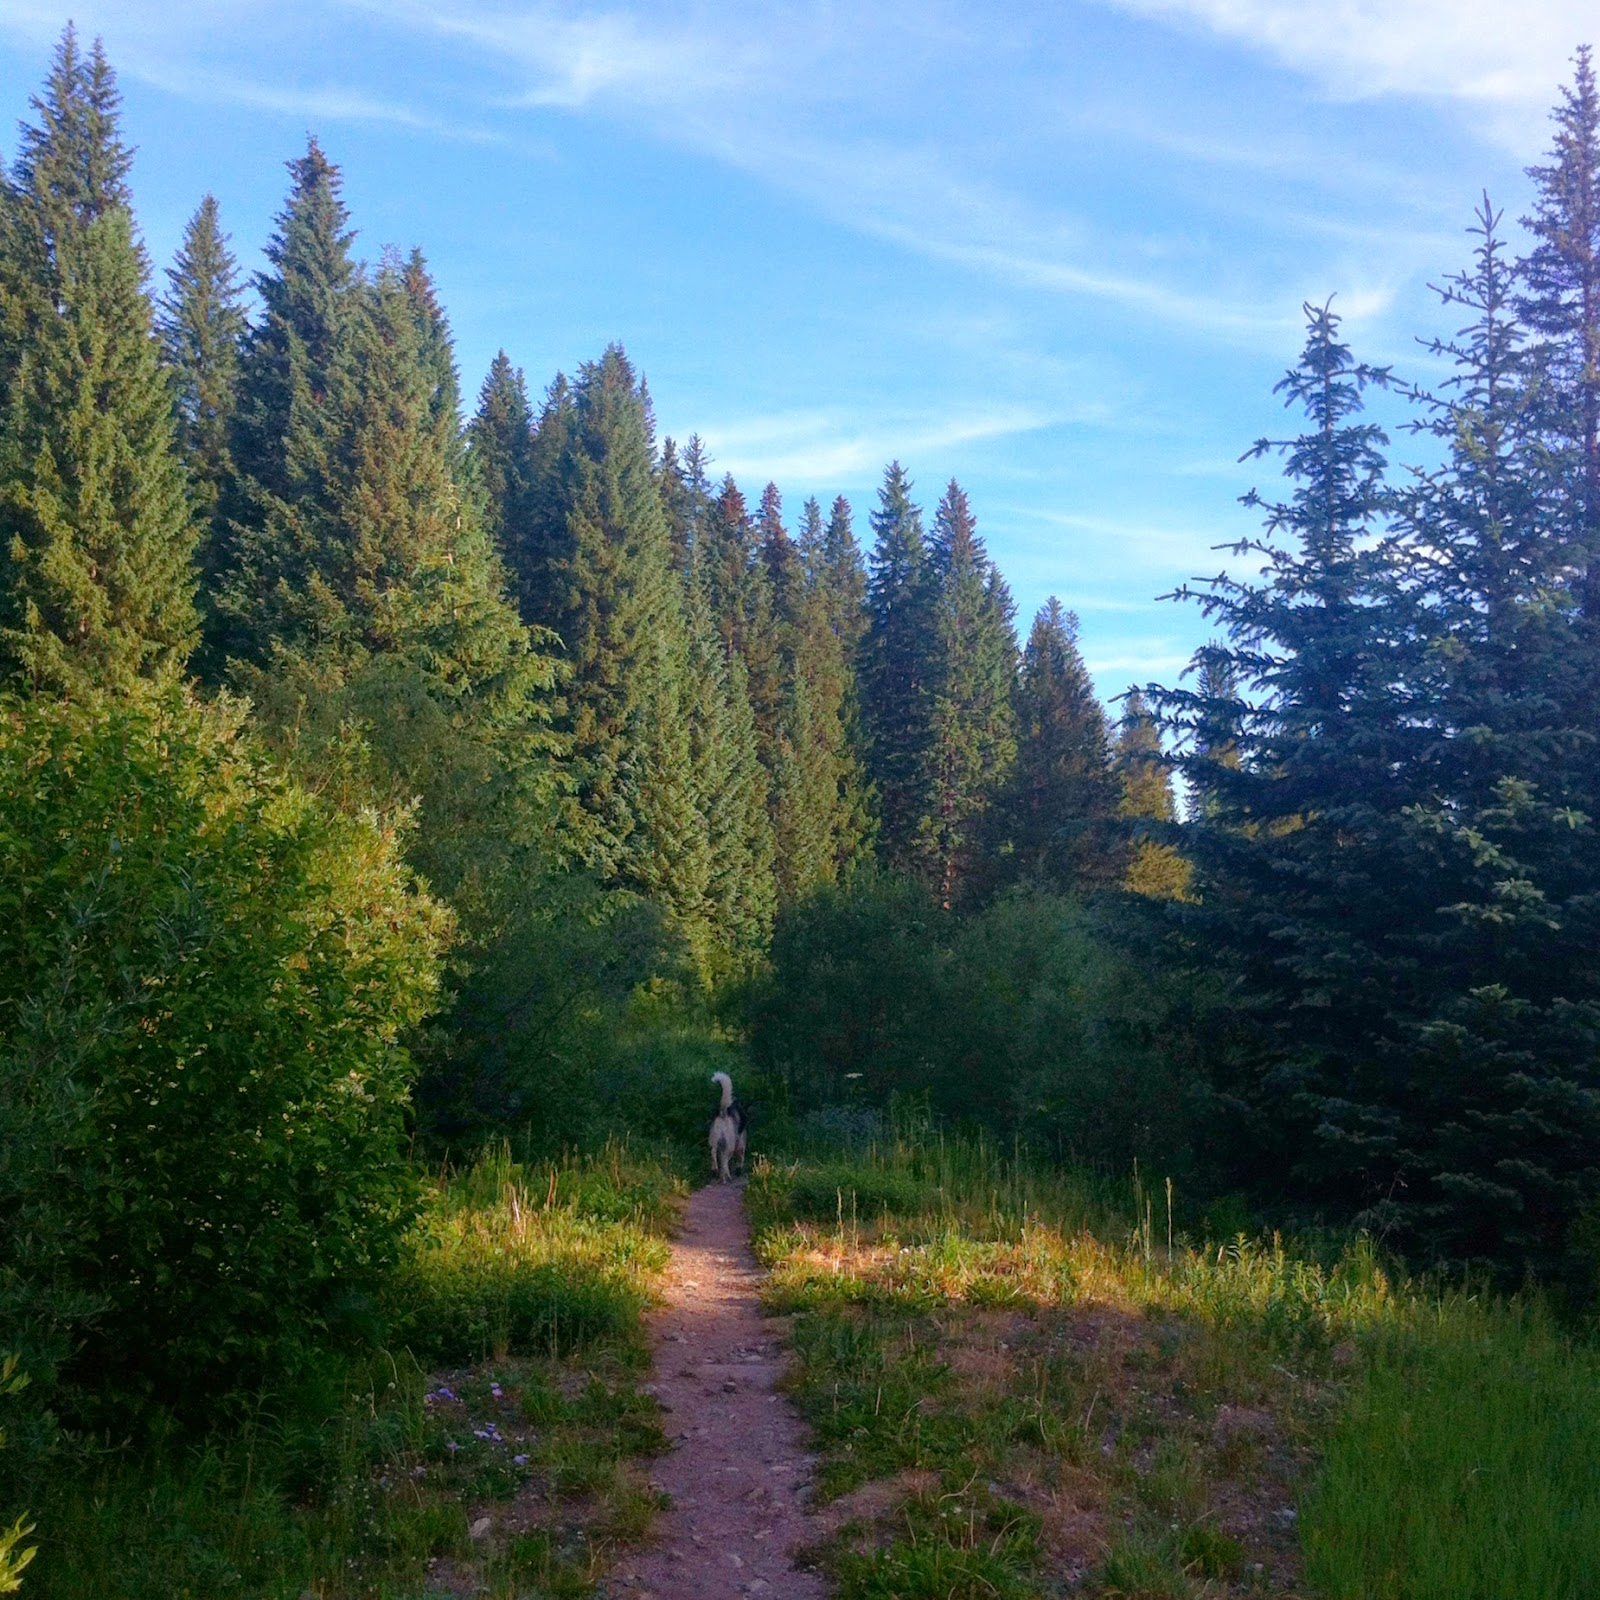 Early morning hike with Jedi in Breckenridge